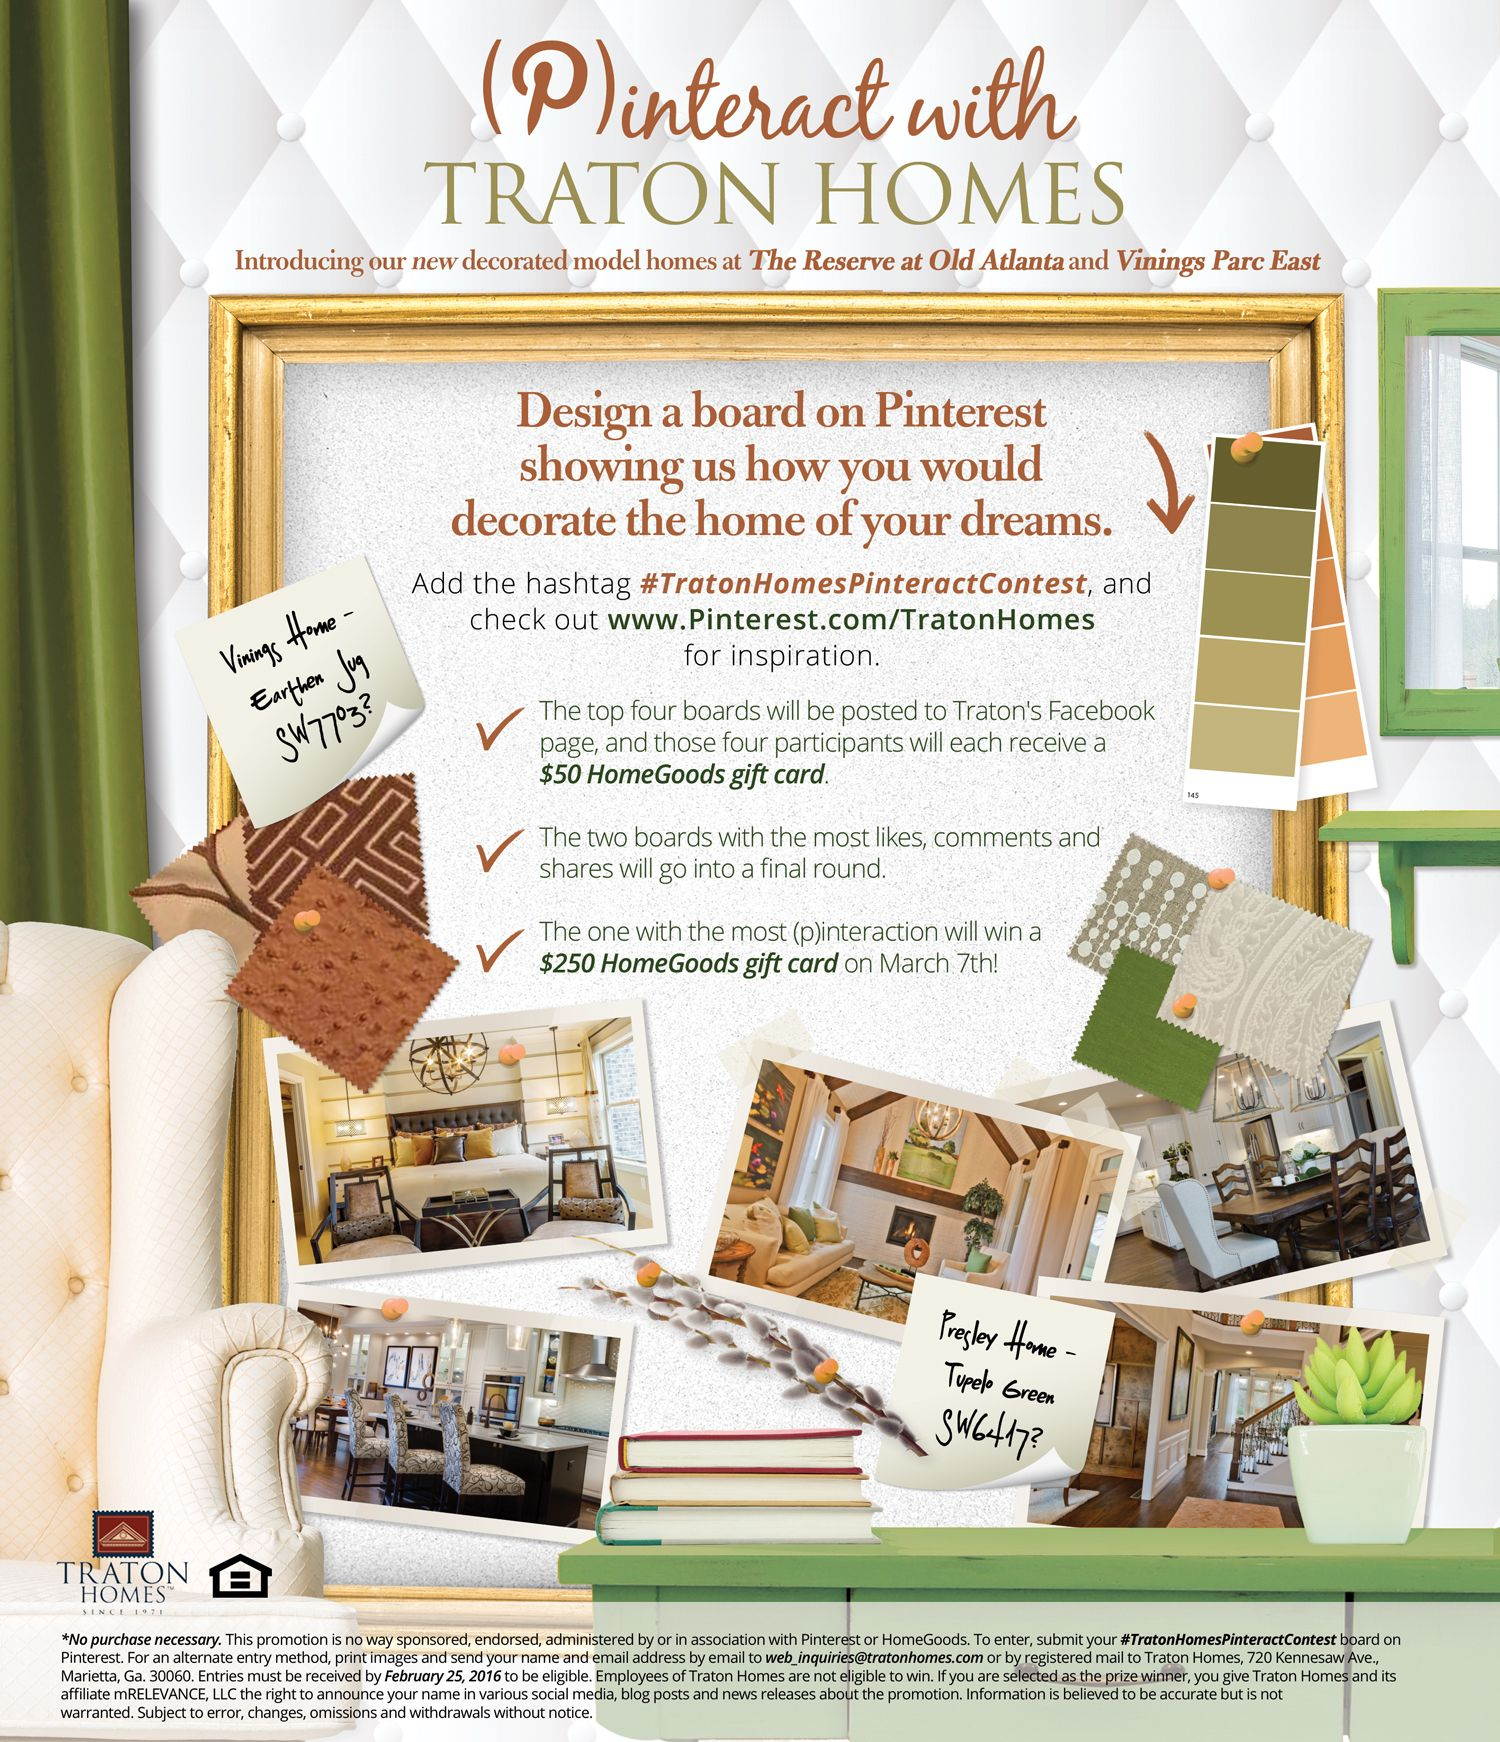 p interact with traton homes to win a 250 homegoods gift card rh pinterest com houses to win in uk houses to win in uk